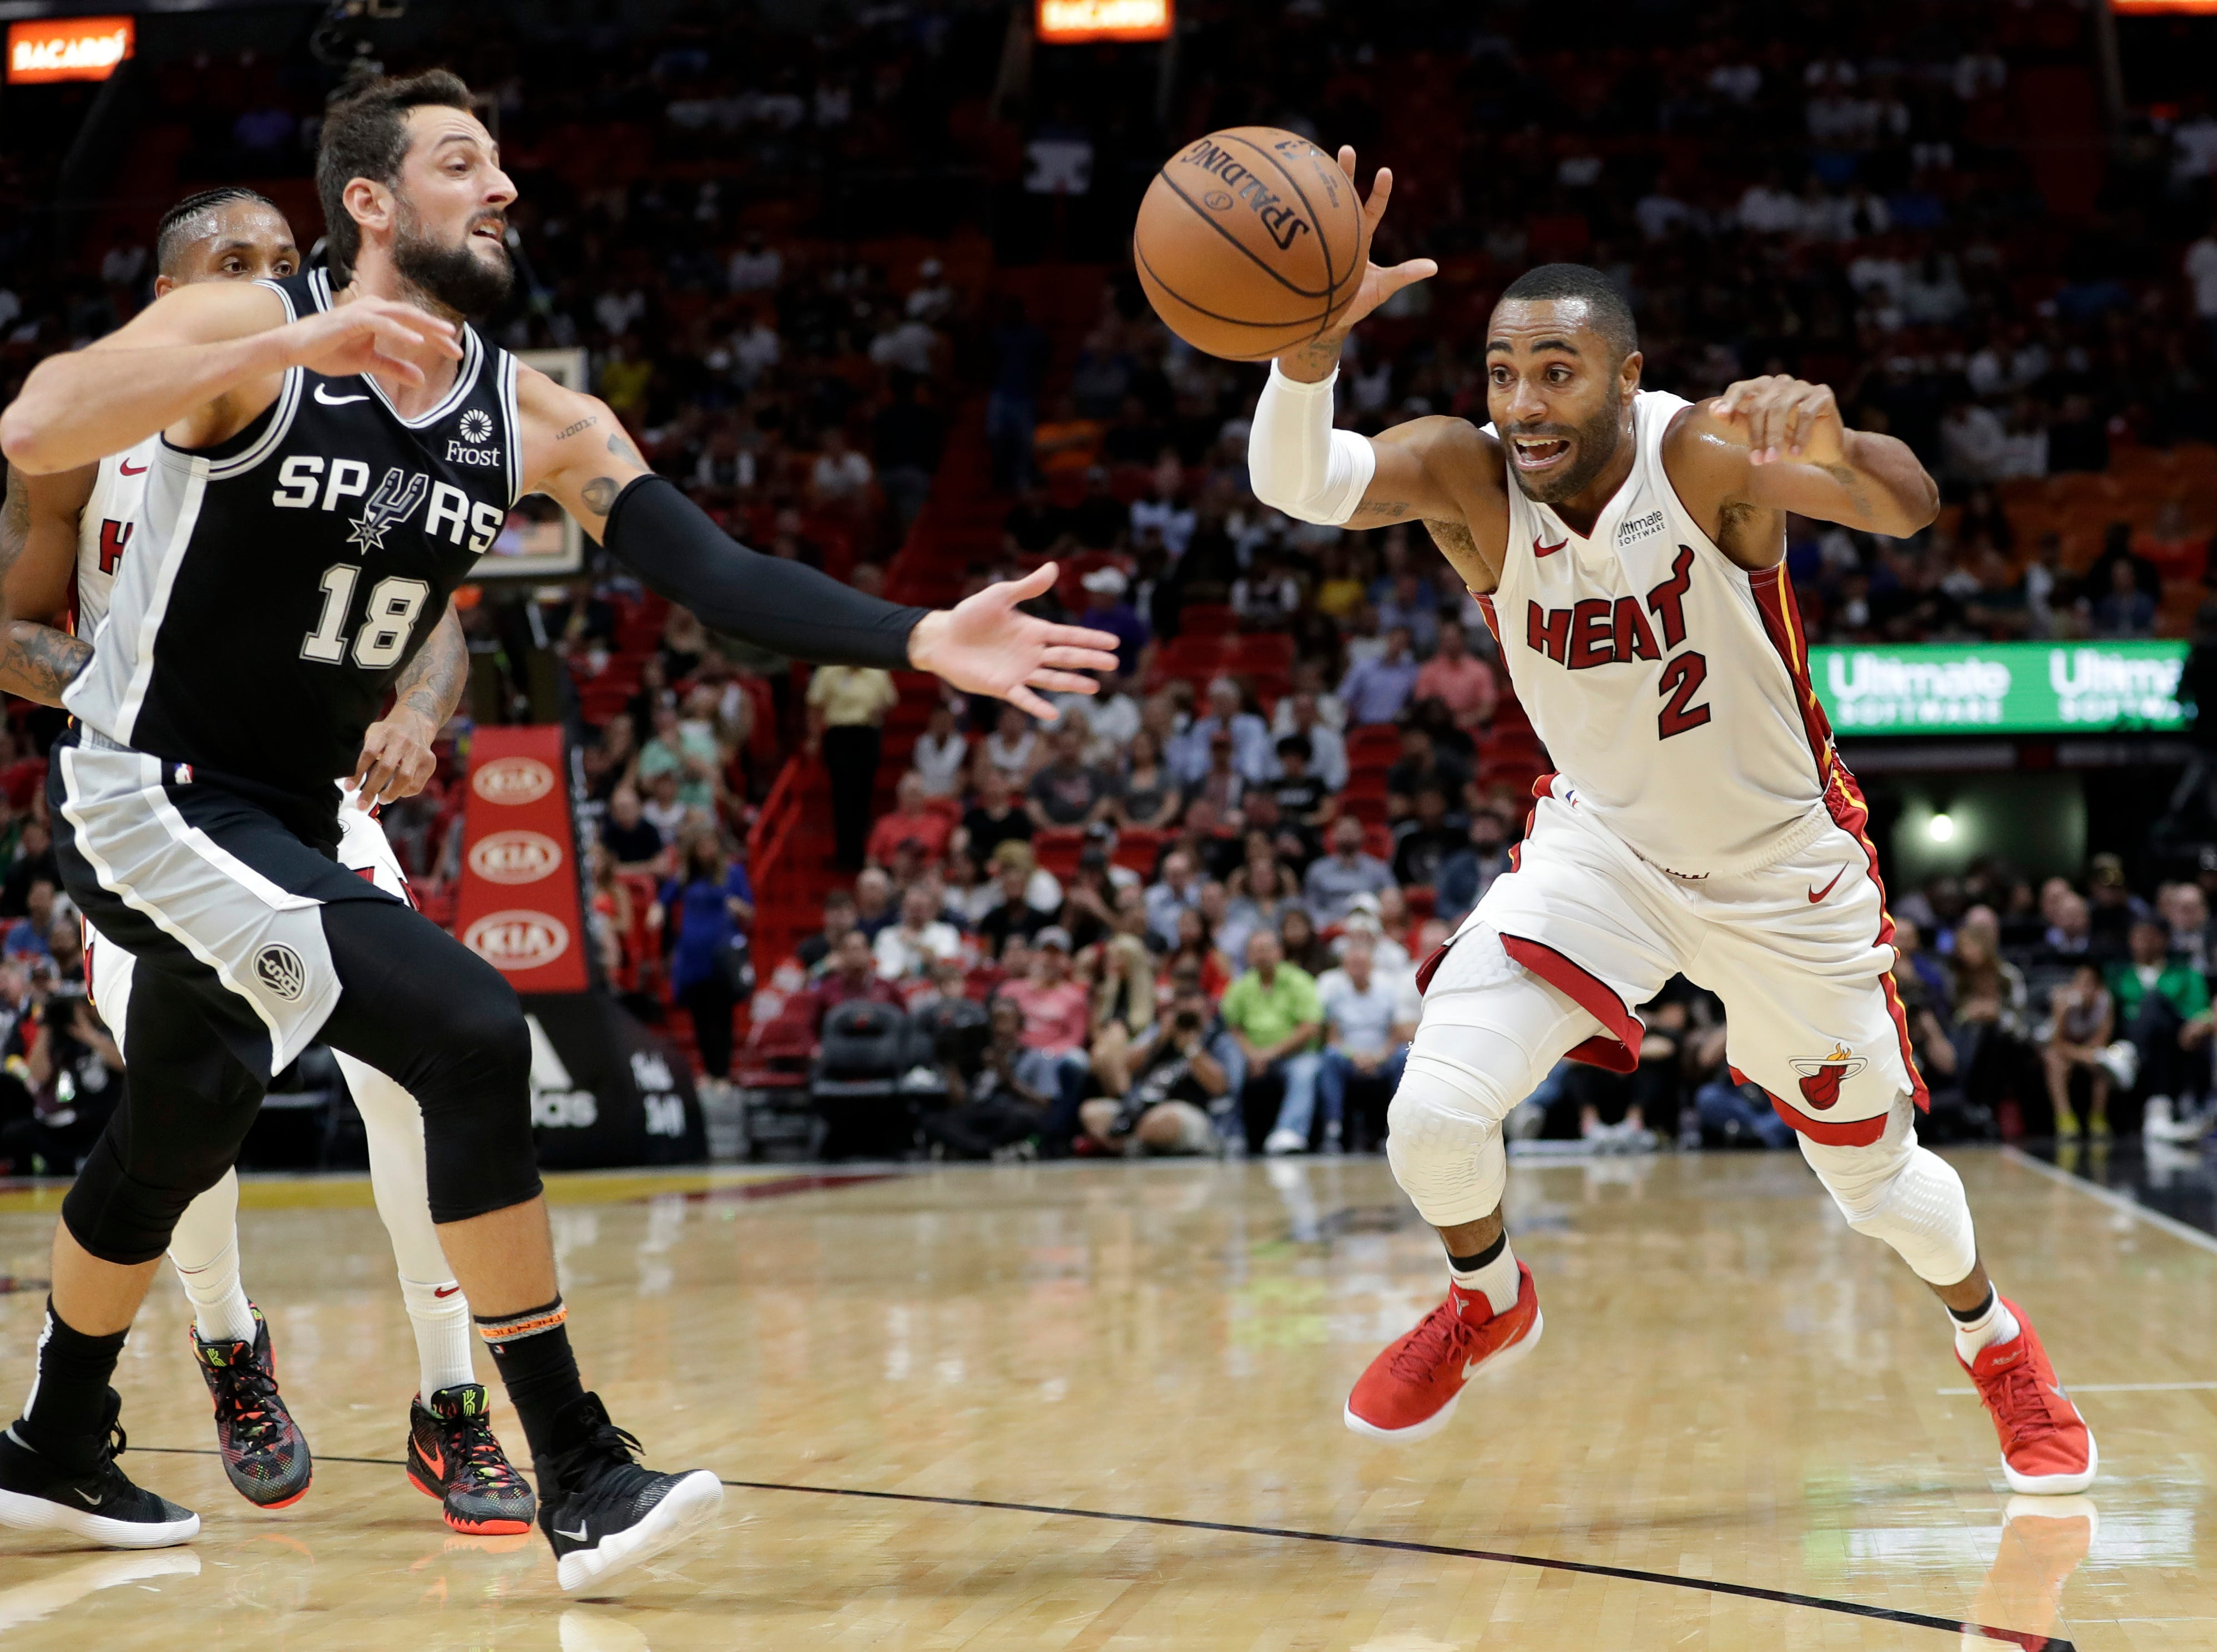 Miami Heat guard Wayne Ellington loses control of the ball as San Antonio Spurs guard Marco Belinelli defends during the first half of an NBA basketball game, Wednesday, Nov. 7, 2018, in Miami.